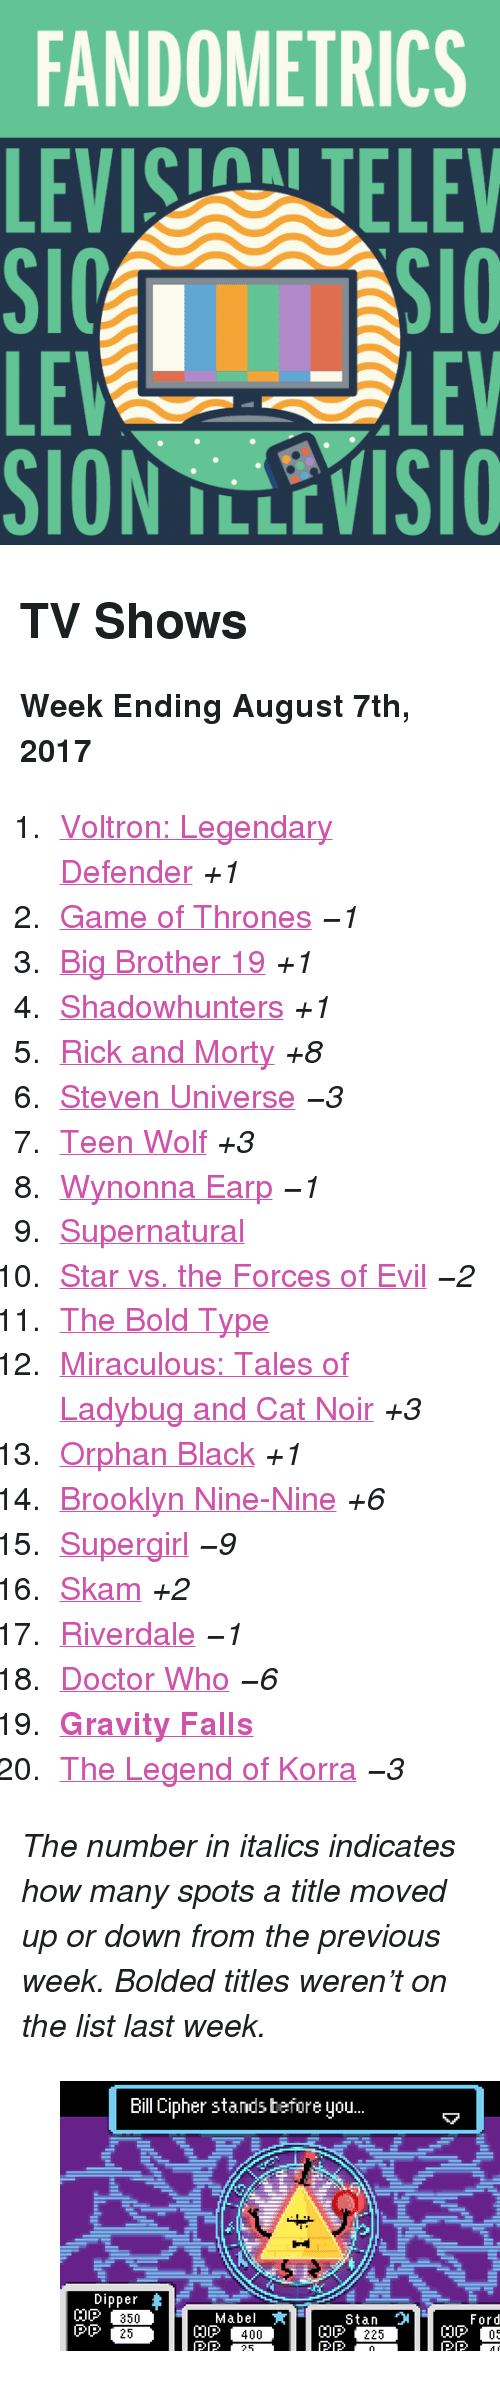 """Levis: FANDOMETRICS  LEVIS TELEV  LE  SION TLLEVISIO  LEV <h2>TV Shows</h2><p><b>Week Ending August 7th, 2017</b></p><ol><li><a href=""""http://tumblr.co/61308QqG6"""">Voltron: Legendary Defender</a><i>+1</i></li><li><a href=""""http://tumblr.co/61318QqGB"""">Game of Thrones</a><i><i>−1</i></i></li><li><a href=""""http://tumblr.co/61328QqG8"""">Big Brother 19</a><i>+1</i></li><li><a href=""""http://tumblr.co/61338QqGD"""">Shadowhunters</a><i>+1</i></li><li><a href=""""http://tumblr.co/61348QqGE"""">Rick and Morty</a><i>+8</i></li><li><a href=""""http://tumblr.co/61358QqG1"""">Steven Universe</a><i><i>−3</i></i></li><li><a href=""""http://tumblr.co/61378QqGH"""">Teen Wolf</a><i>+3</i></li><li><a href=""""http://tumblr.co/61388QqGy"""">Wynonna Earp</a><i><i>−1</i></i></li><li><a href=""""http://tumblr.co/61398QqGJ"""">Supernatural</a></li><li><a href=""""http://tumblr.co/61308QqGK"""">Star vs. the Forces of Evil</a><i><i>−2</i></i></li><li><a href=""""http://tumblr.co/61318QqGz"""">The Bold Type</a></li><li><a href=""""http://tumblr.co/61328QqGM"""">Miraculous: Tales of Ladybug and Cat Noir</a><i>+3</i></li><li><a href=""""http://tumblr.co/61338QqG3"""">Orphan Black</a><i>+1</i></li><li><a href=""""http://tumblr.co/61348QqGO"""">Brooklyn Nine-Nine</a><i>+6</i></li><li><a href=""""http://tumblr.co/61358QqGP"""">Supergirl</a><i><i>−9</i></i></li><li><a href=""""http://tumblr.co/61368QqGu"""">Skam</a><i>+2</i></li><li><a href=""""http://tumblr.co/61378QqGR"""">Riverdale</a><i><i>−1</i></i></li><li><a href=""""http://tumblr.co/61388QqGr"""">Doctor Who</a><i><i>−6</i></i></li><li><a href=""""http://tumblr.co/61398QqGT""""><b>Gravity Falls</b></a></li><li><a href=""""http://tumblr.co/61308QqGp"""">The Legend of Korra</a><i><i>−3</i></i></li></ol><p><i>The number in italics indicates how many spots a title moved up or down from the previous week. Bolded titles weren't on the list last week.</i></p><figure class=""""tmblr-full"""" data-orig-height=""""270"""" data-orig-width=""""480"""" data-tumblr-attribution=""""2x4art:-9zNJVbcu3LjlwQFPittNw:ZzPPJv21sa9F7""""><img src=""""https://78.media.tumblr.com/e084cbd57d2a8e196f"""